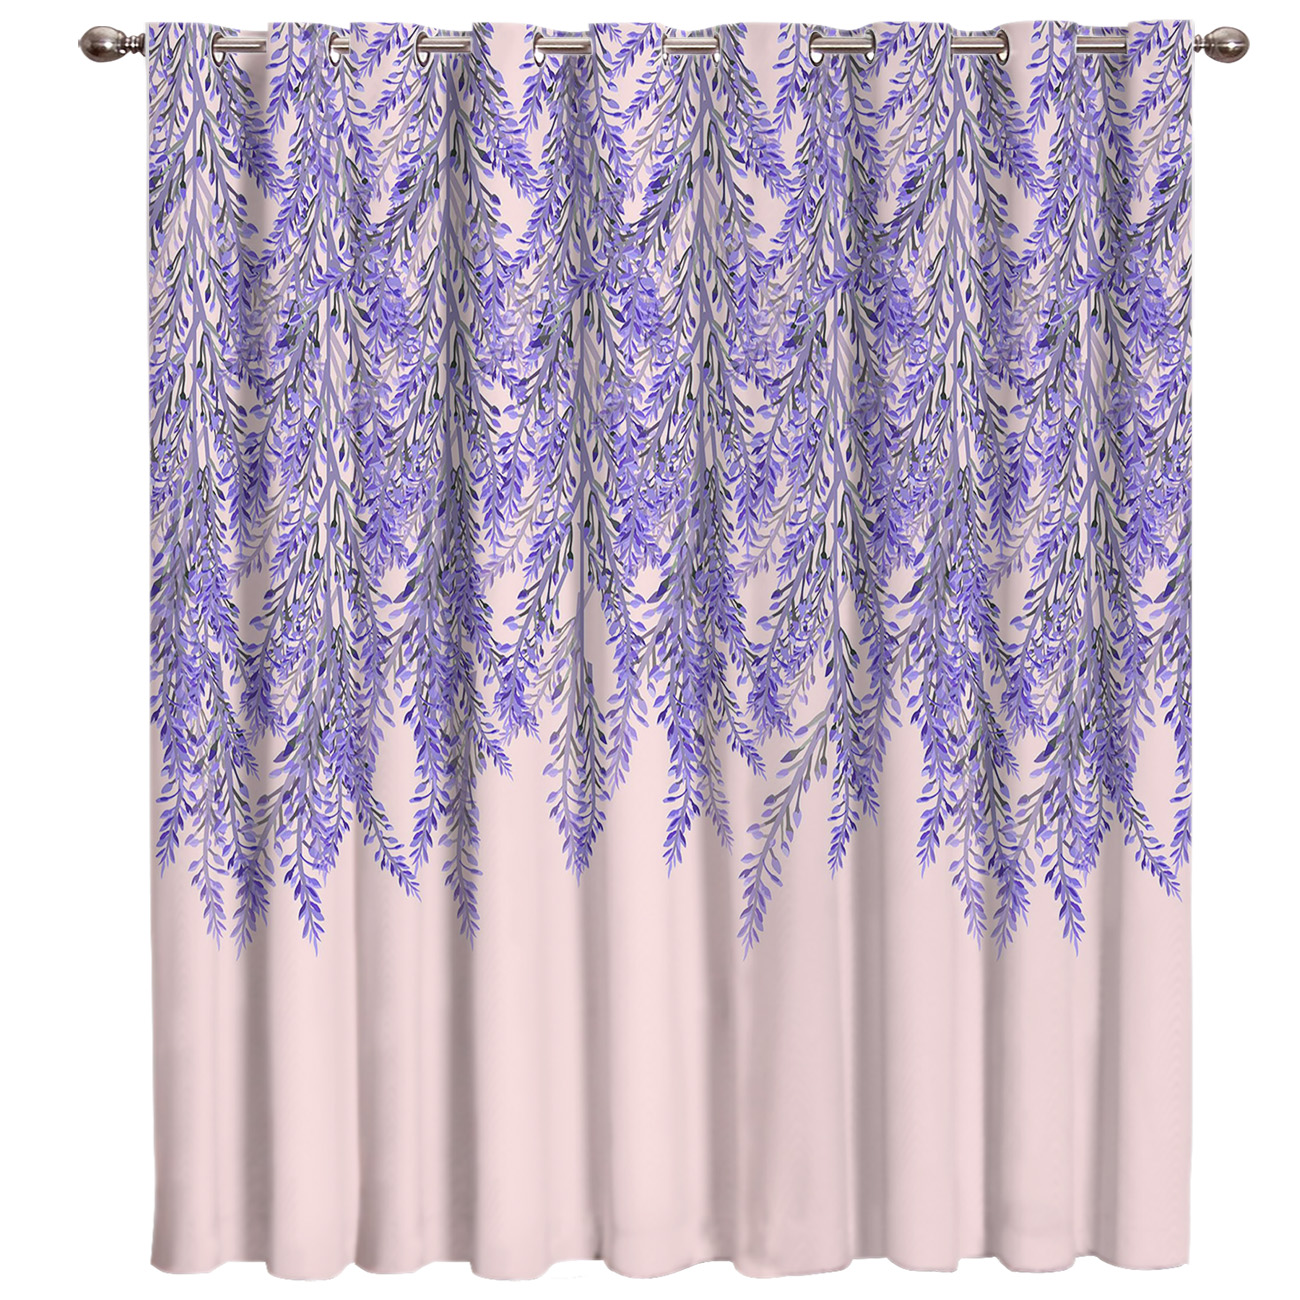 Lavender Island Flower Window Treatments Curtains Valance Living